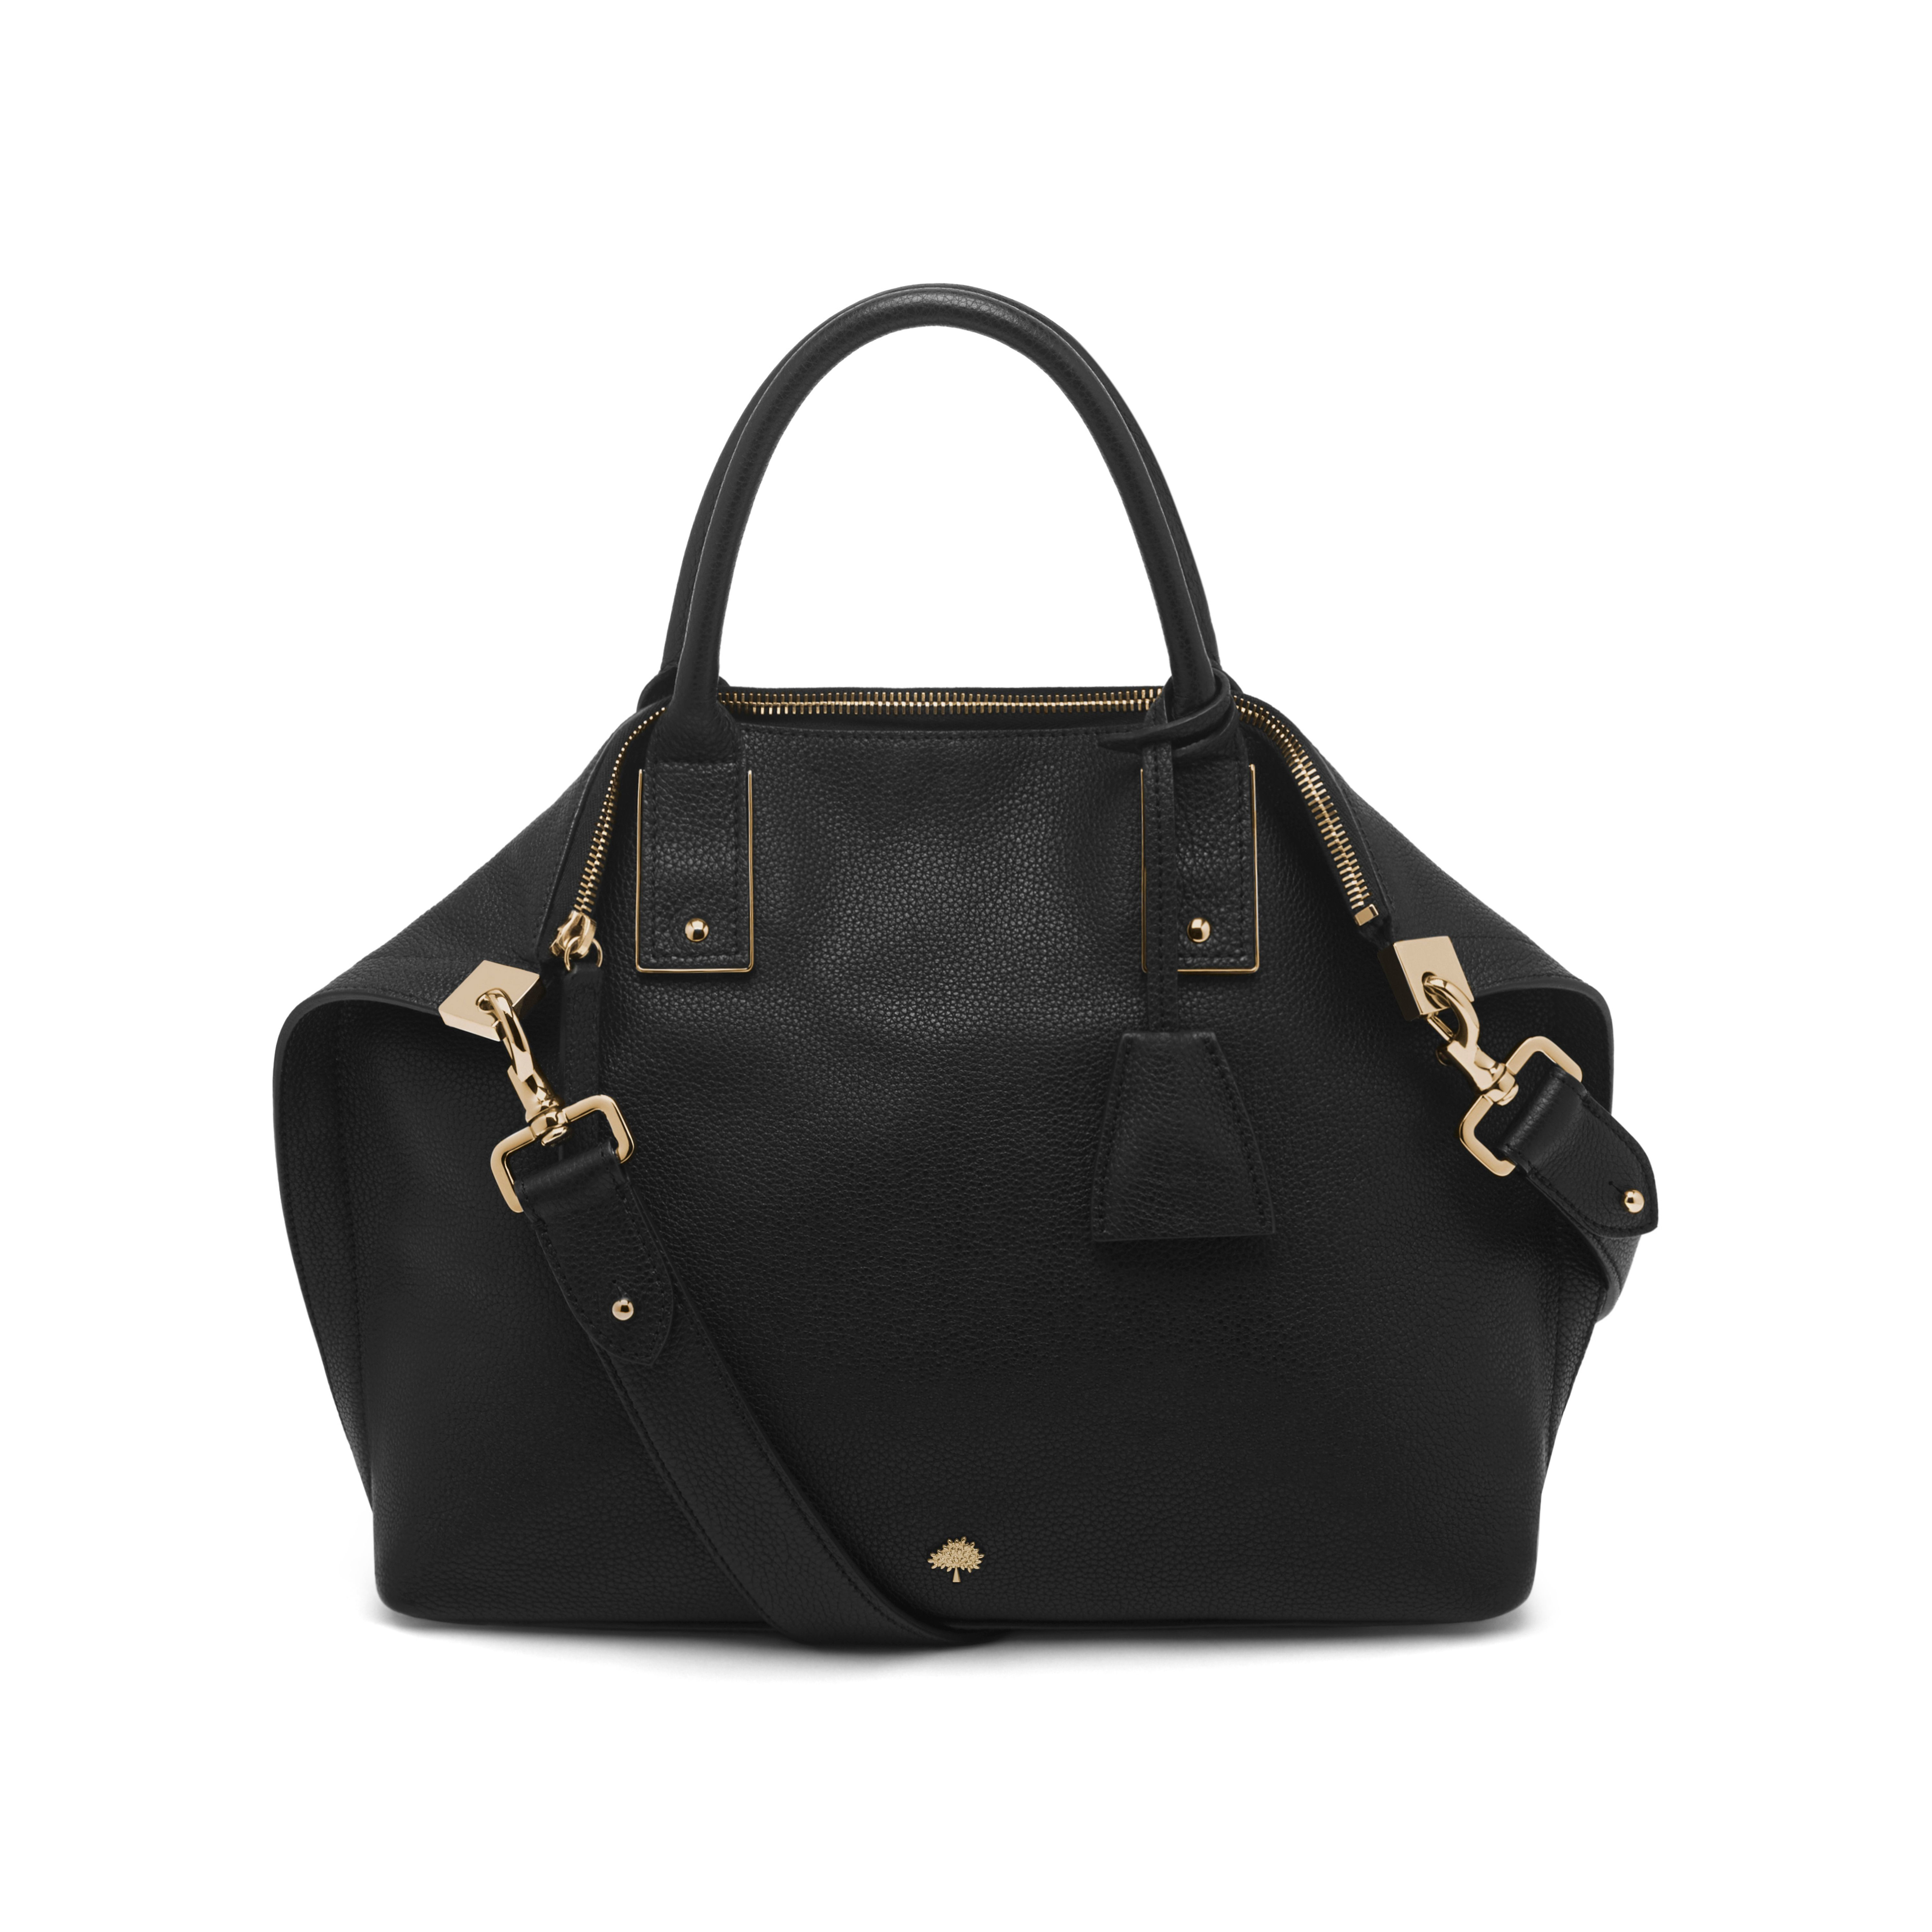 Mulberry Alice Small Leather Shoulder Bag in Black - Lyst 25beb3e45ee4d